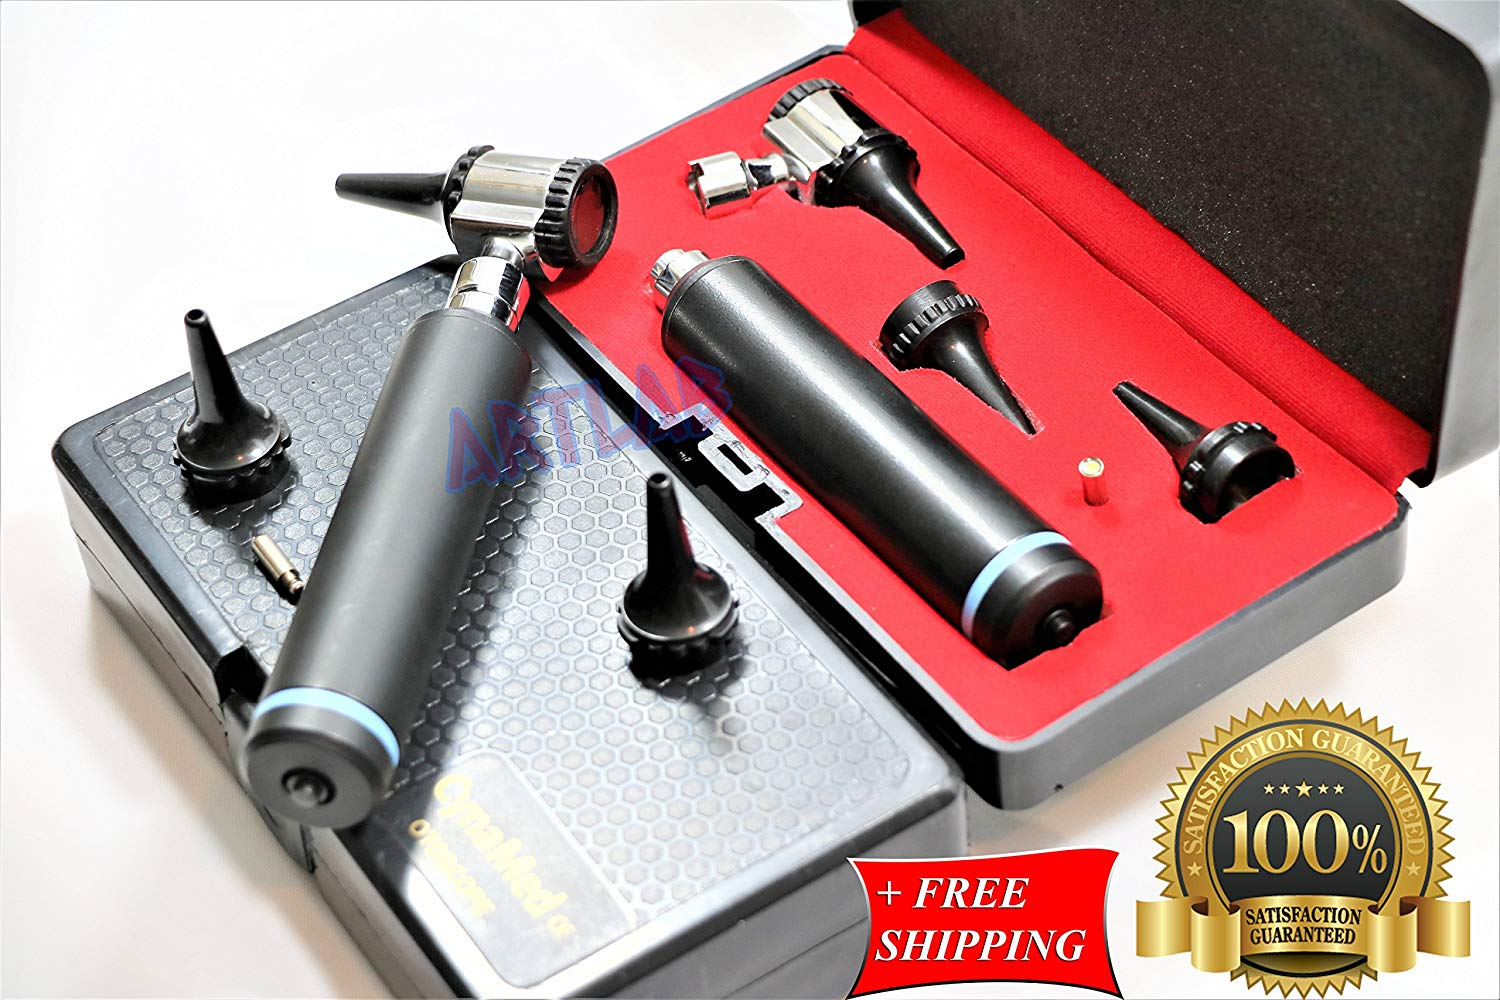 Cheap Ent Otoscope, find Ent Otoscope deals on line at